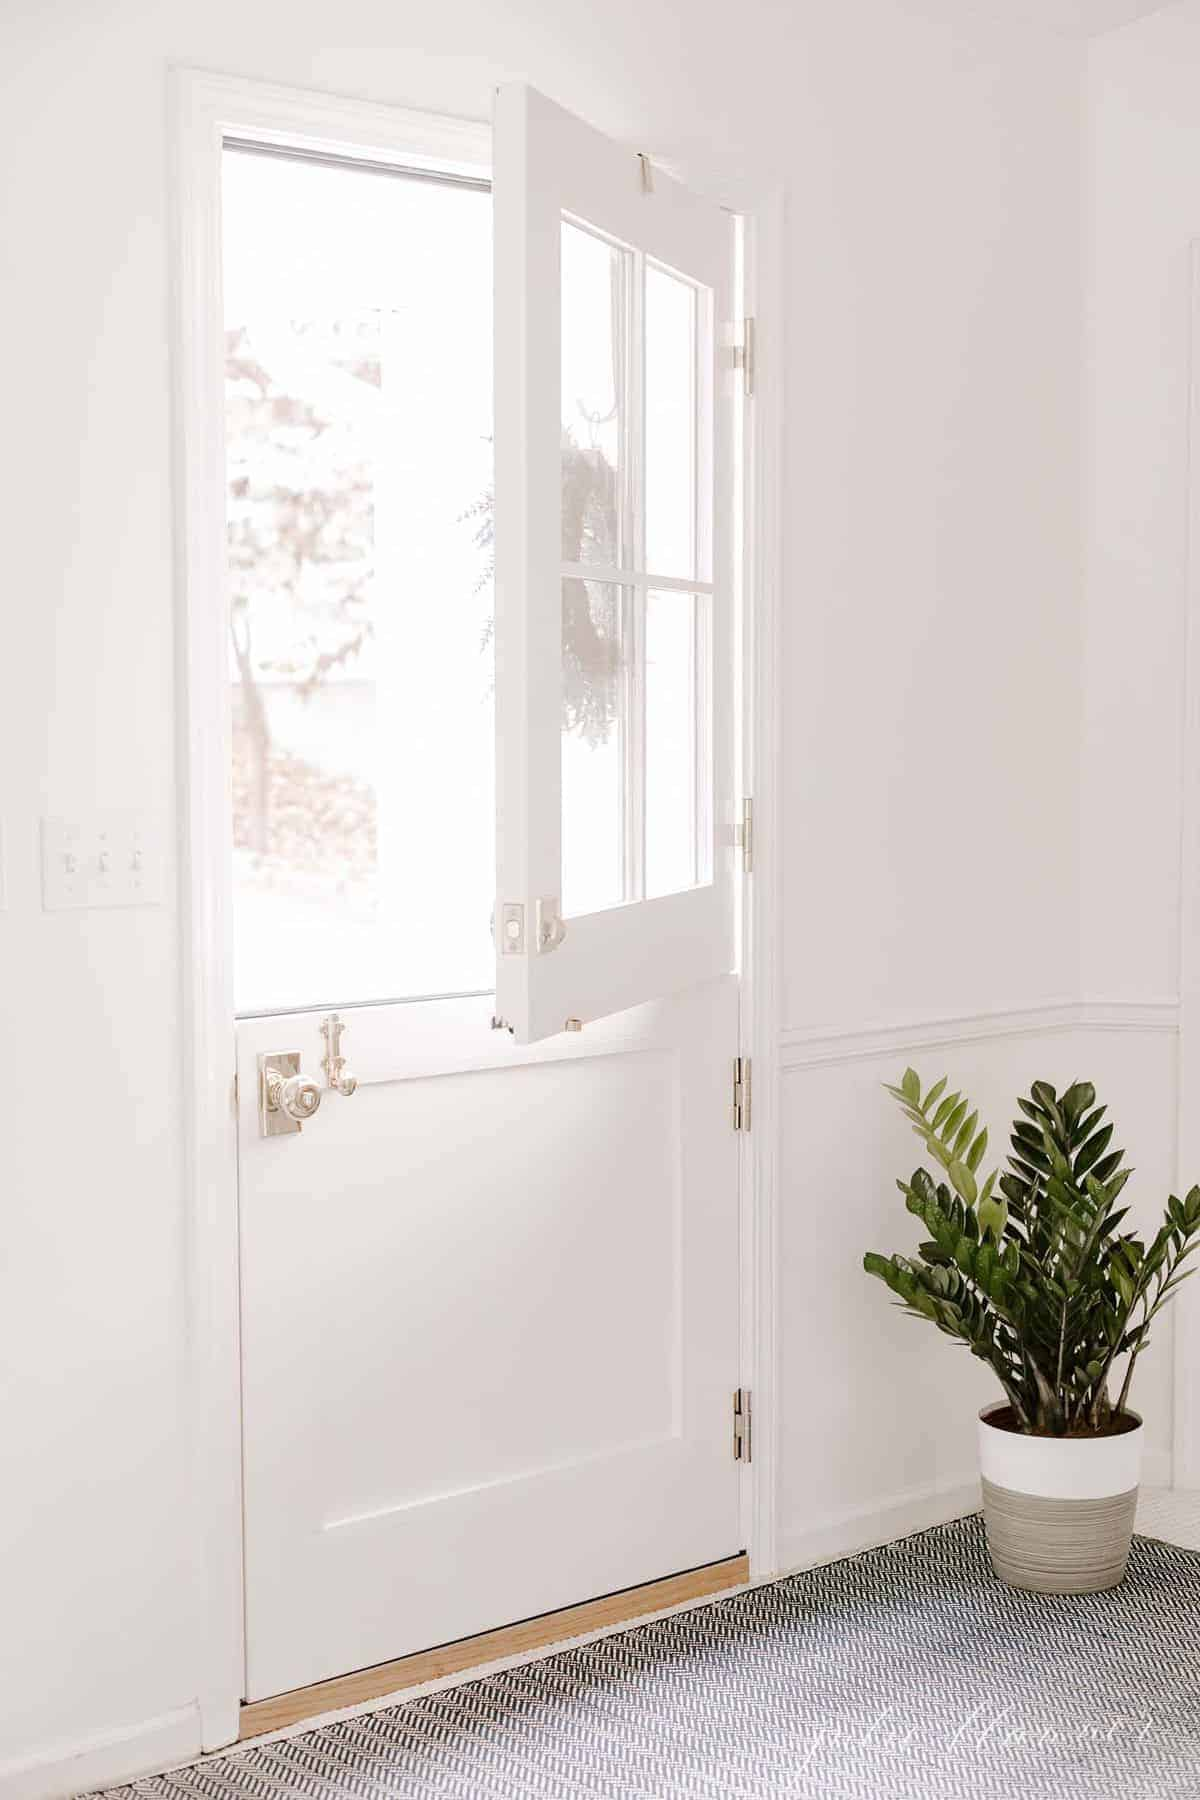 A white exterior dutch door, top open, with a zz plant on the floor by the door.